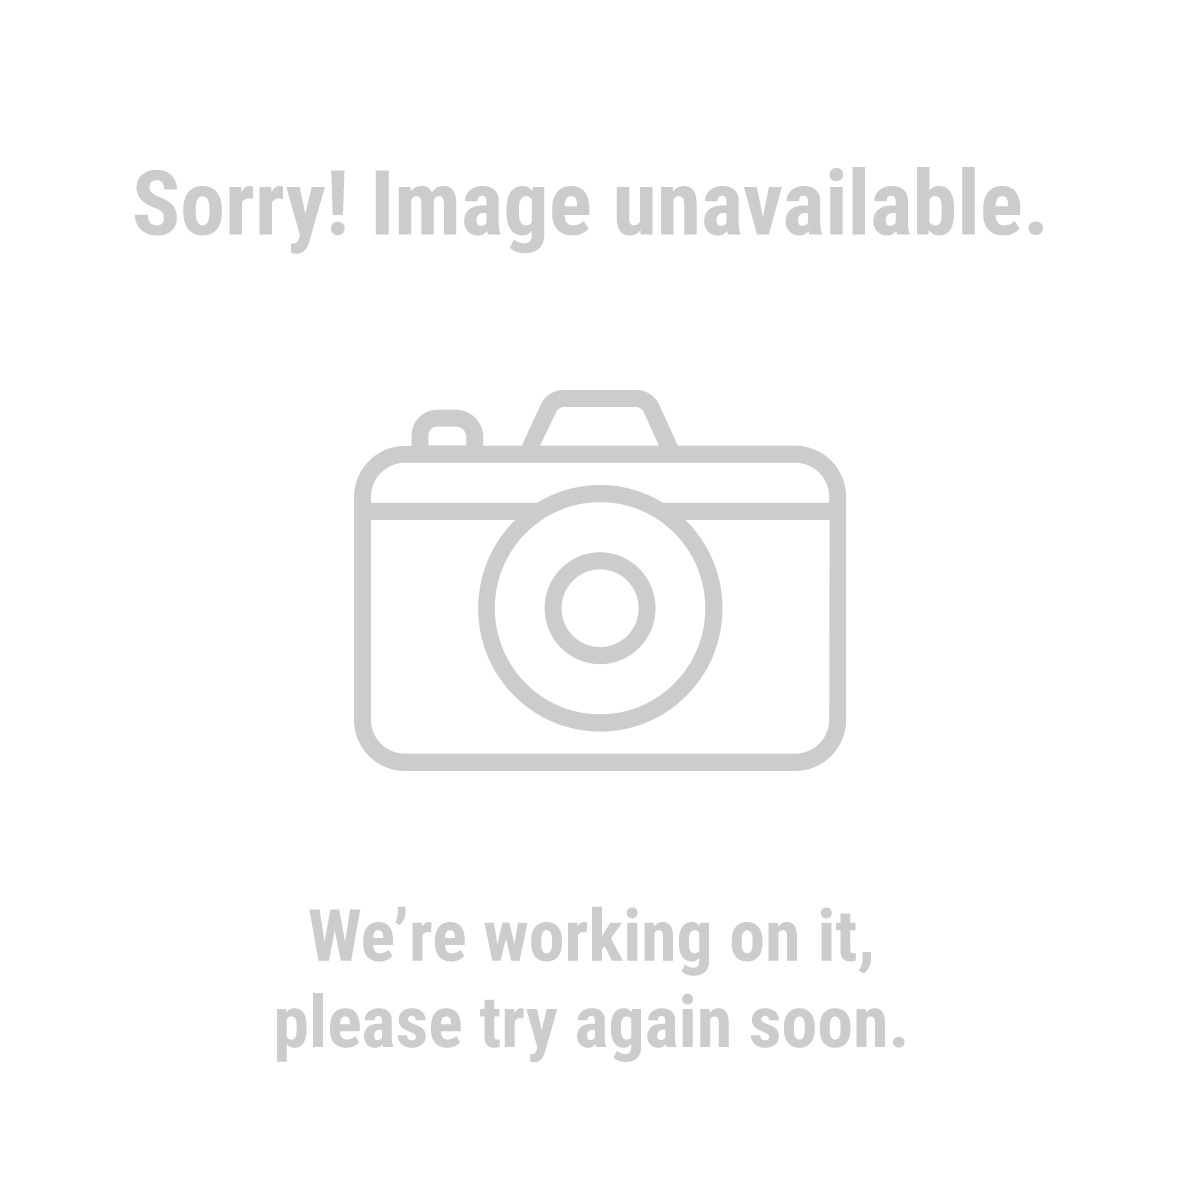 90517 Pack of 50 Trash Bags - 33 Gallon